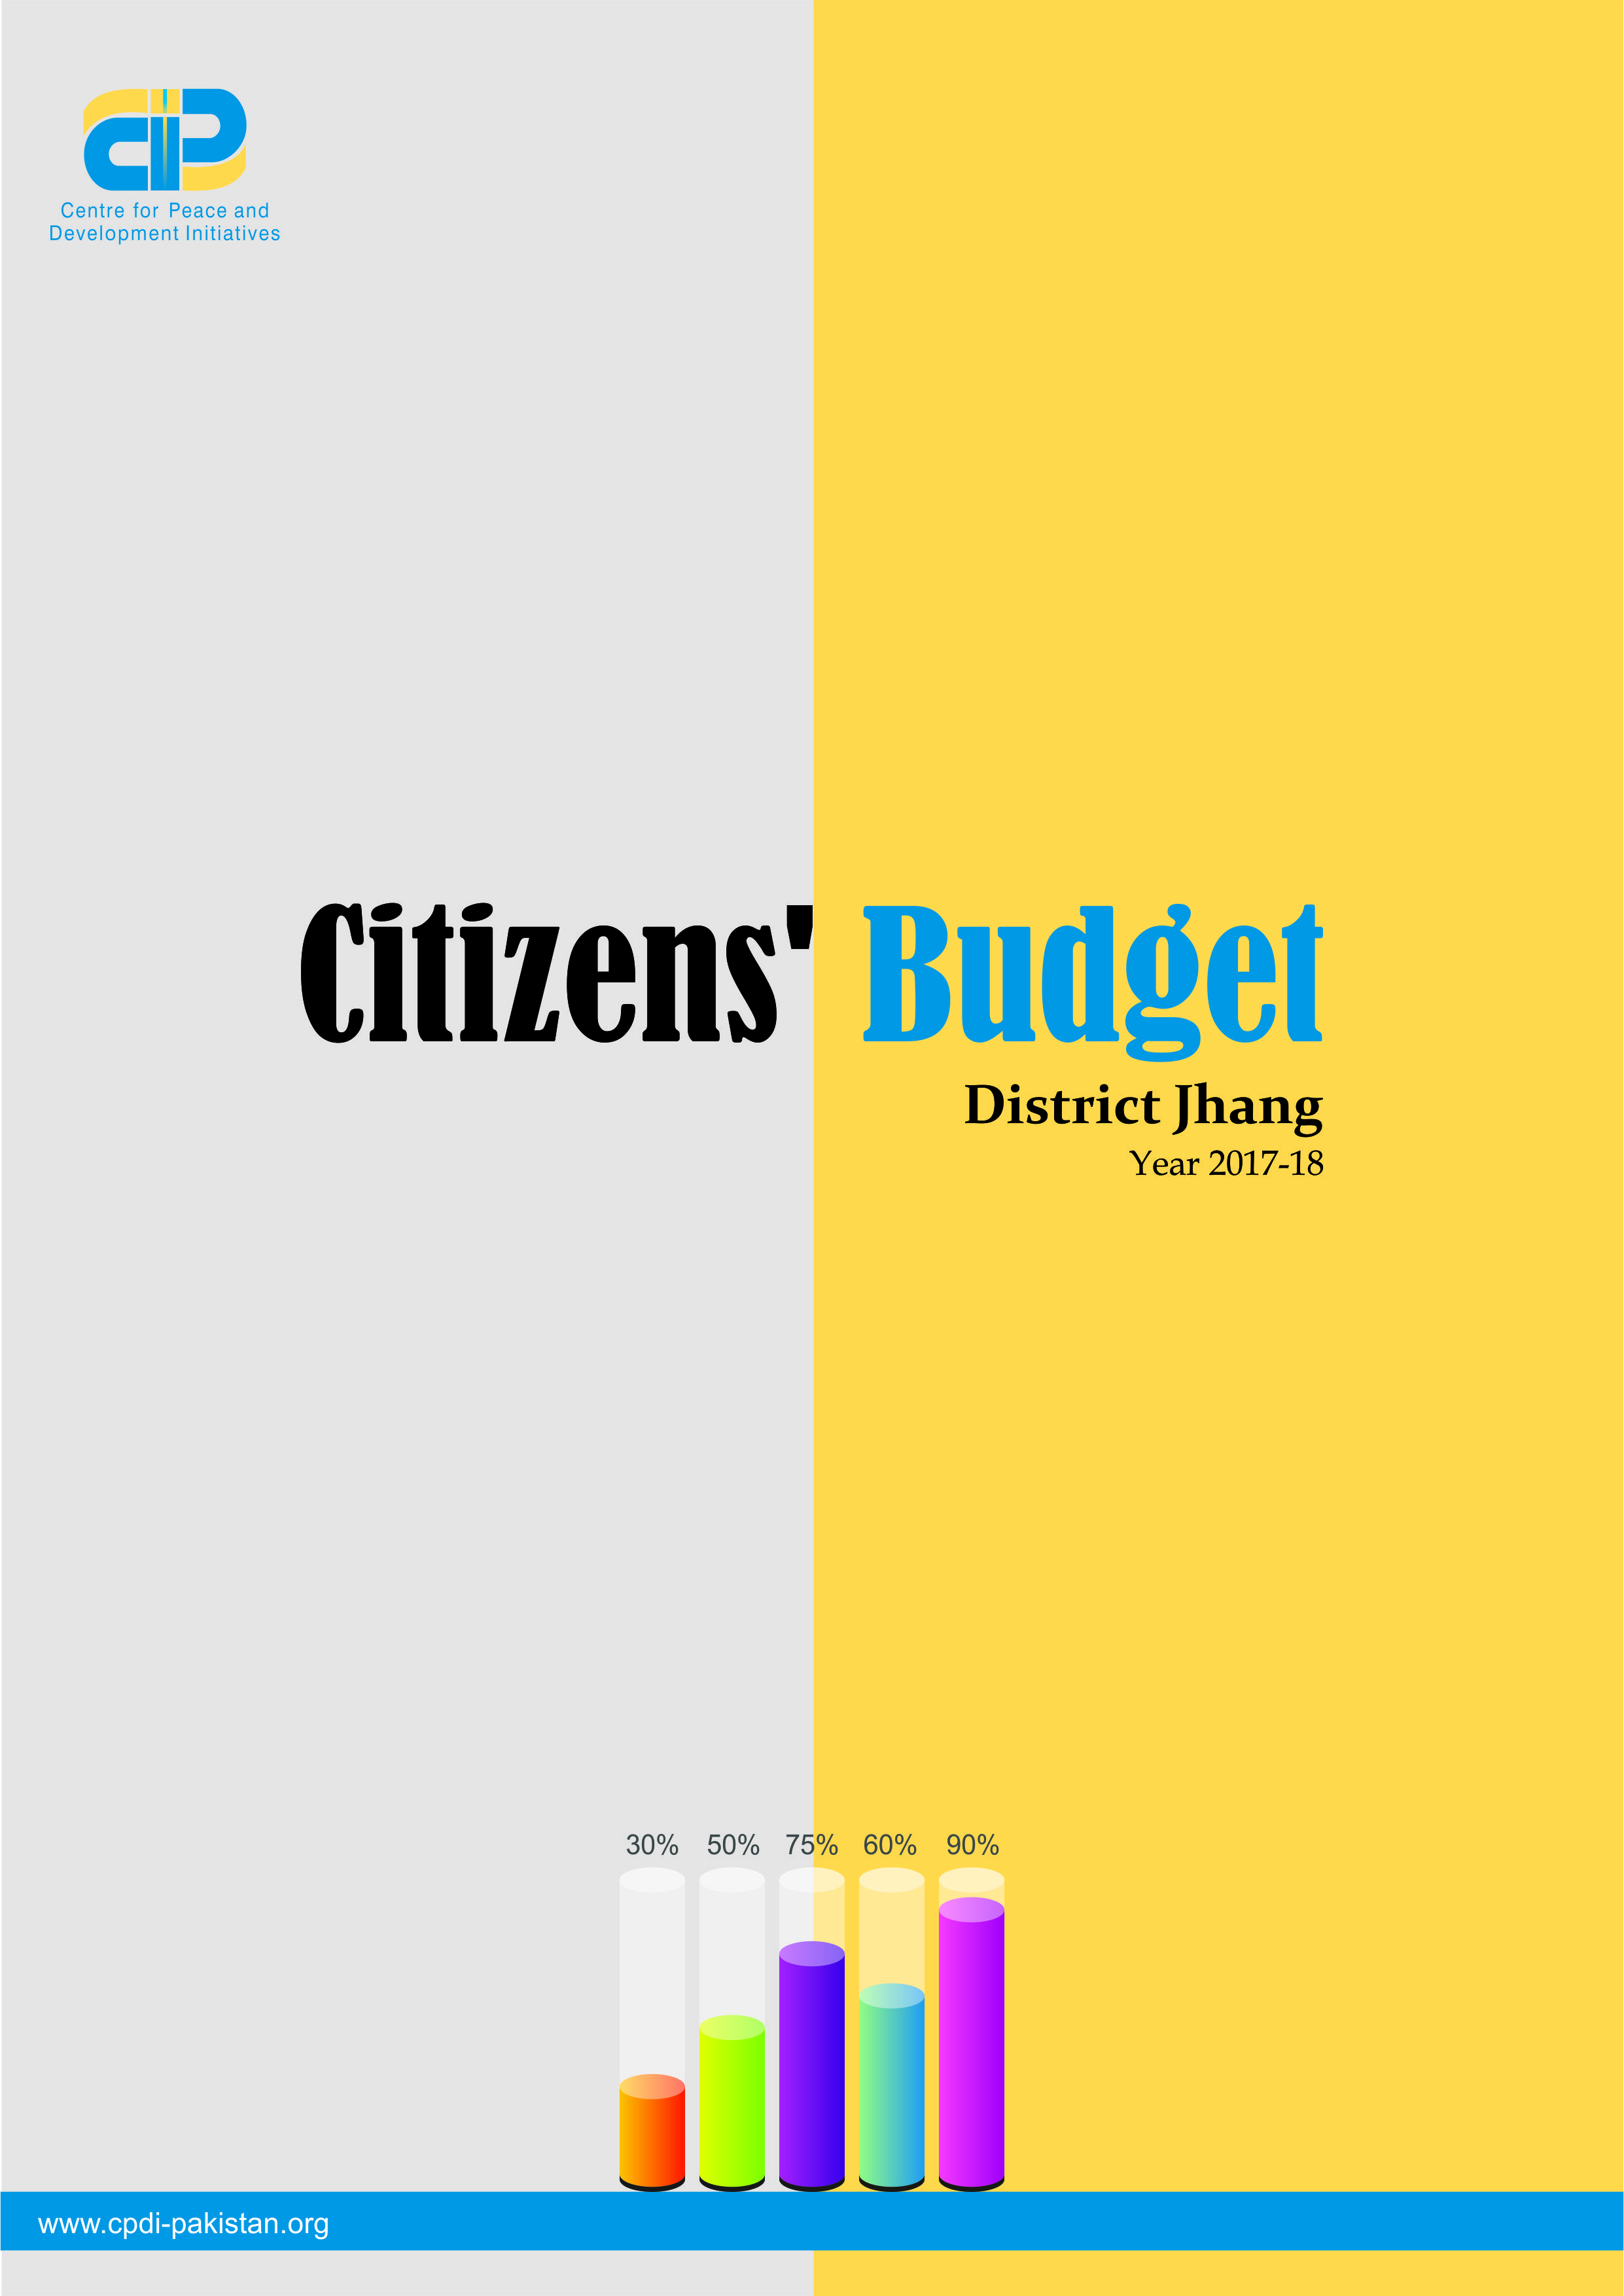 Citizens' Budget District Jhang Year 2017-18